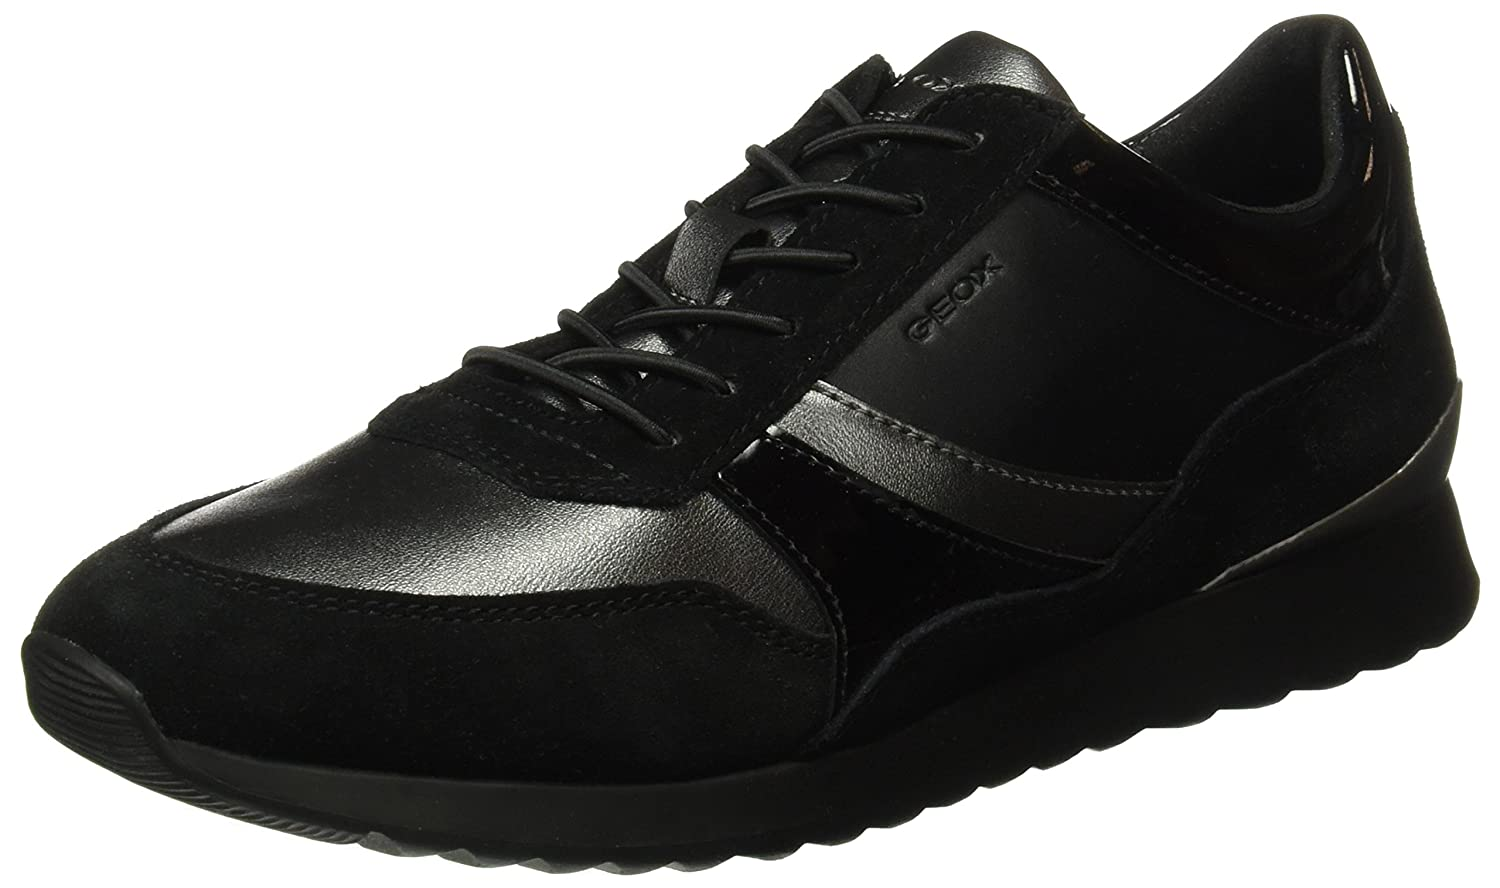 cdfcd68ad2cf5 Geox Women s D Deynna E Low-Top Sneakers  Amazon.co.uk  Shoes   Bags